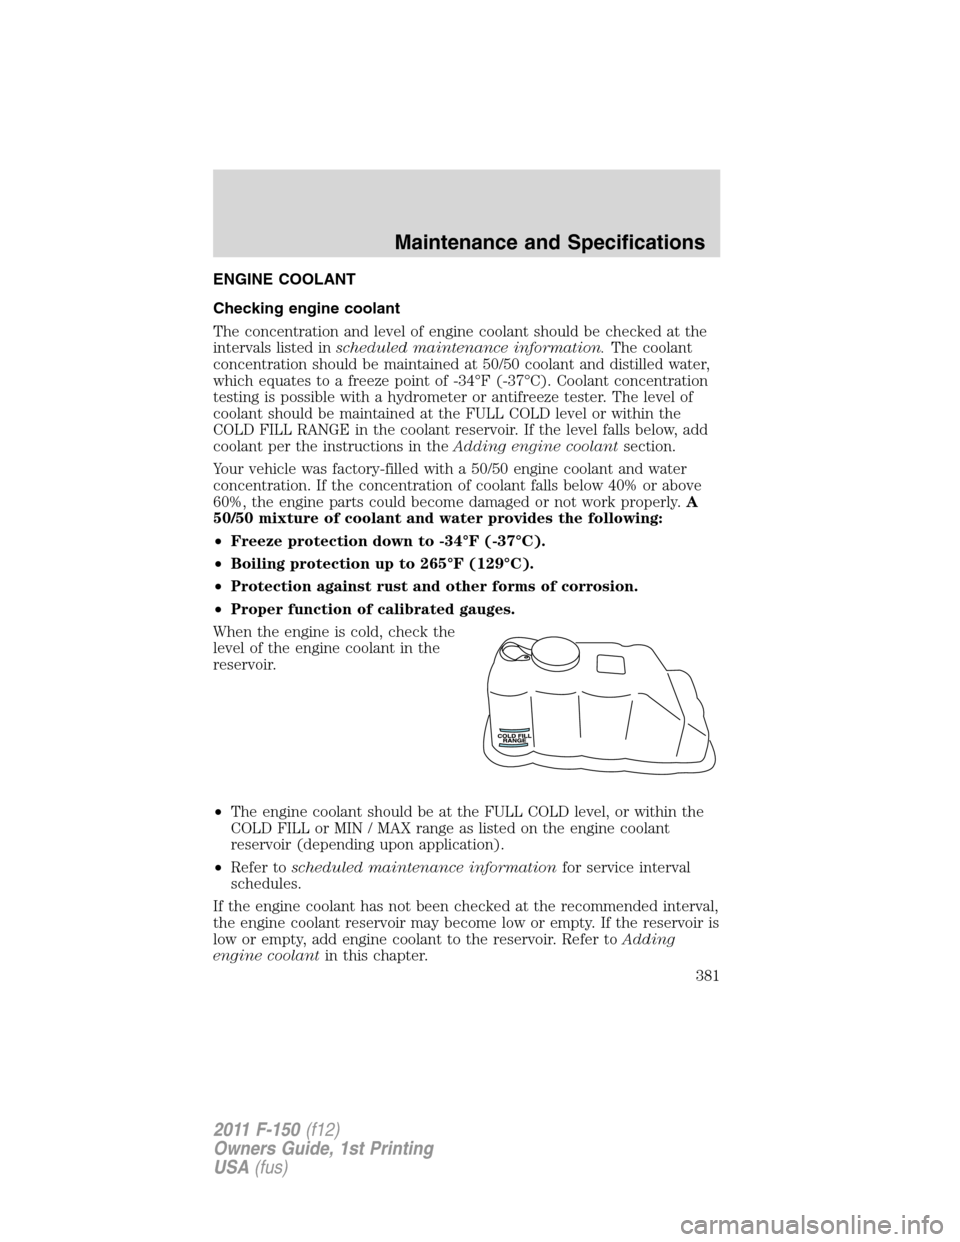 ford 2011 f150 maintenance manuals